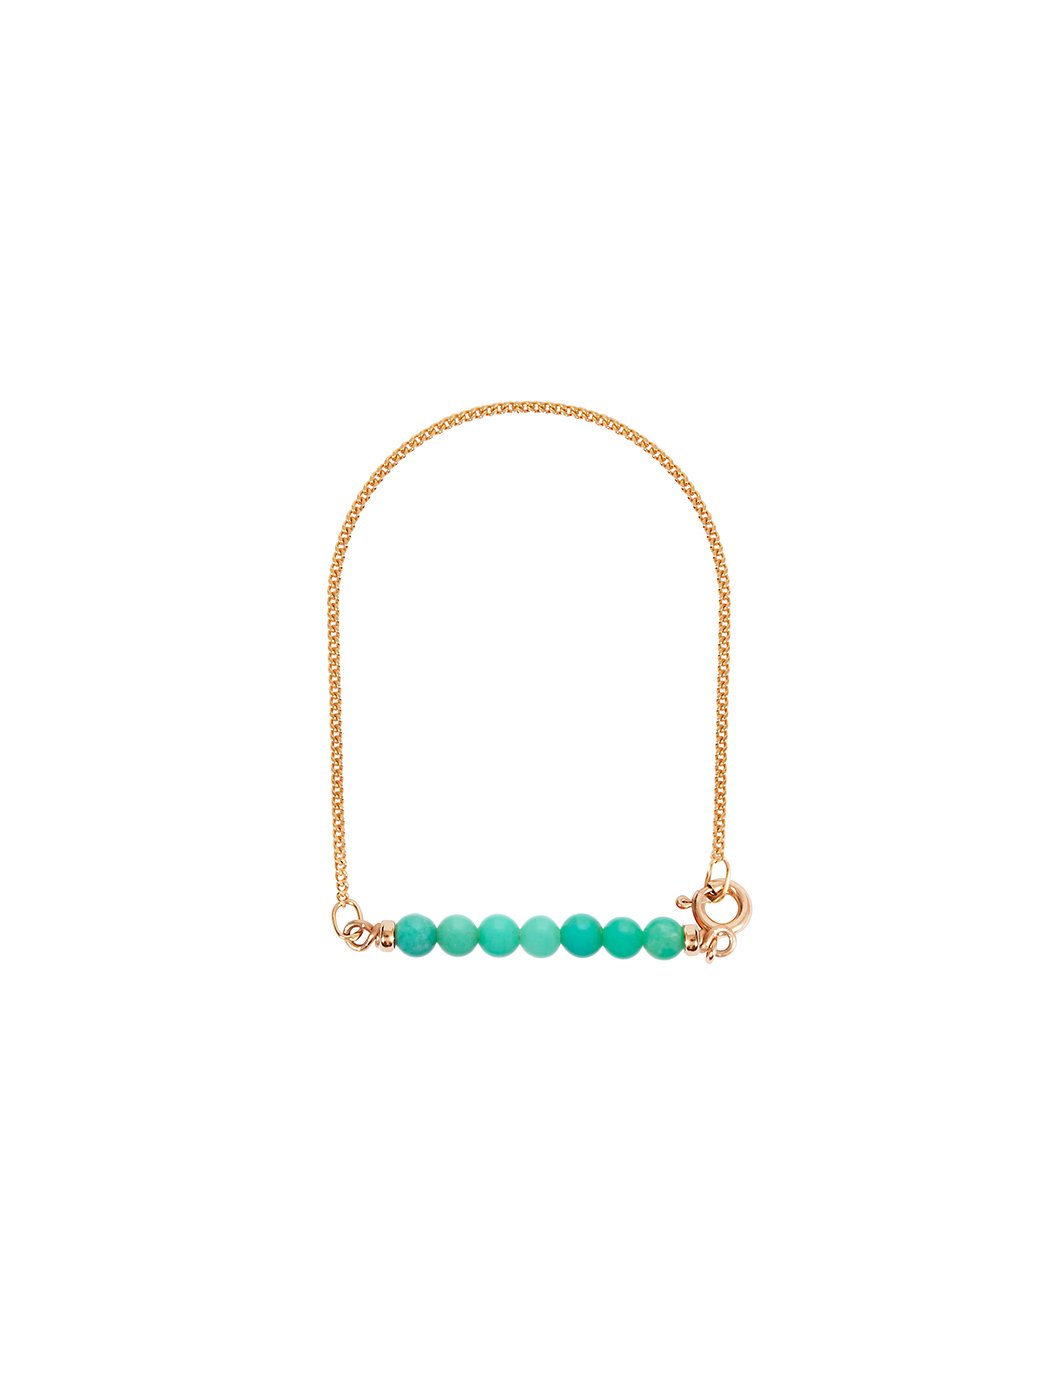 Fiorina Jewellery Gold Friendship Bracelet Chrysoprase